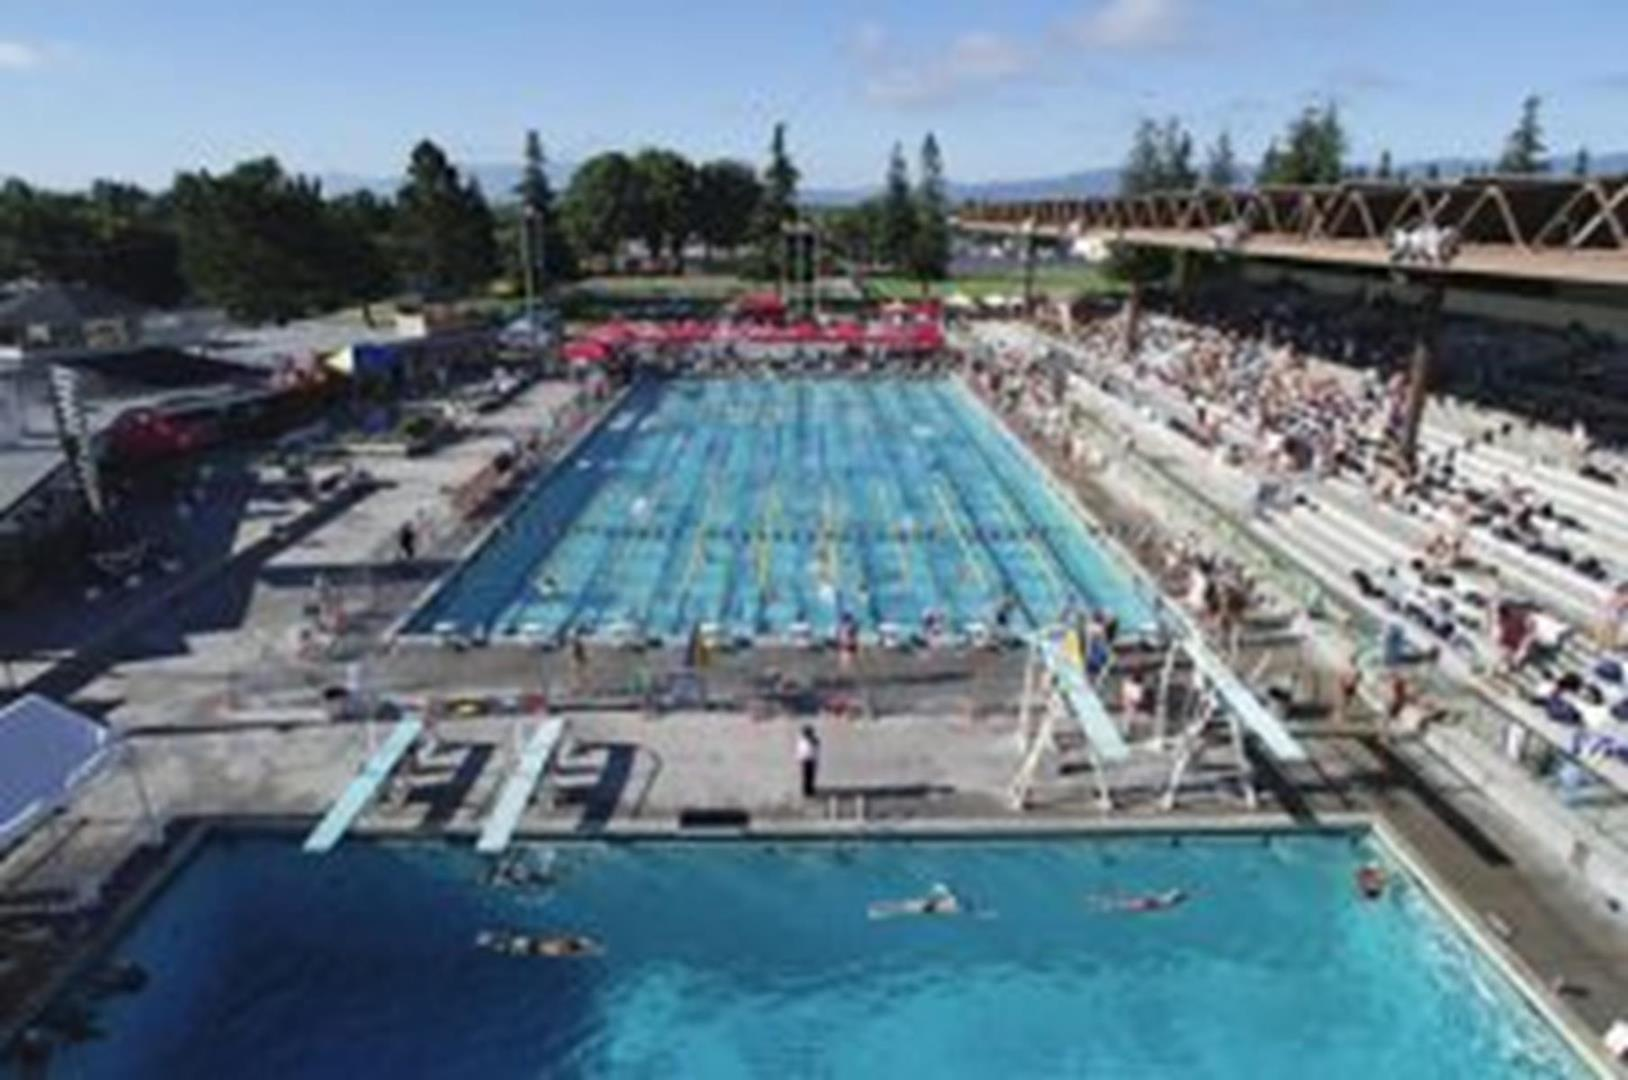 SWIMMING & DIVING - George F. Haines International Swim Center